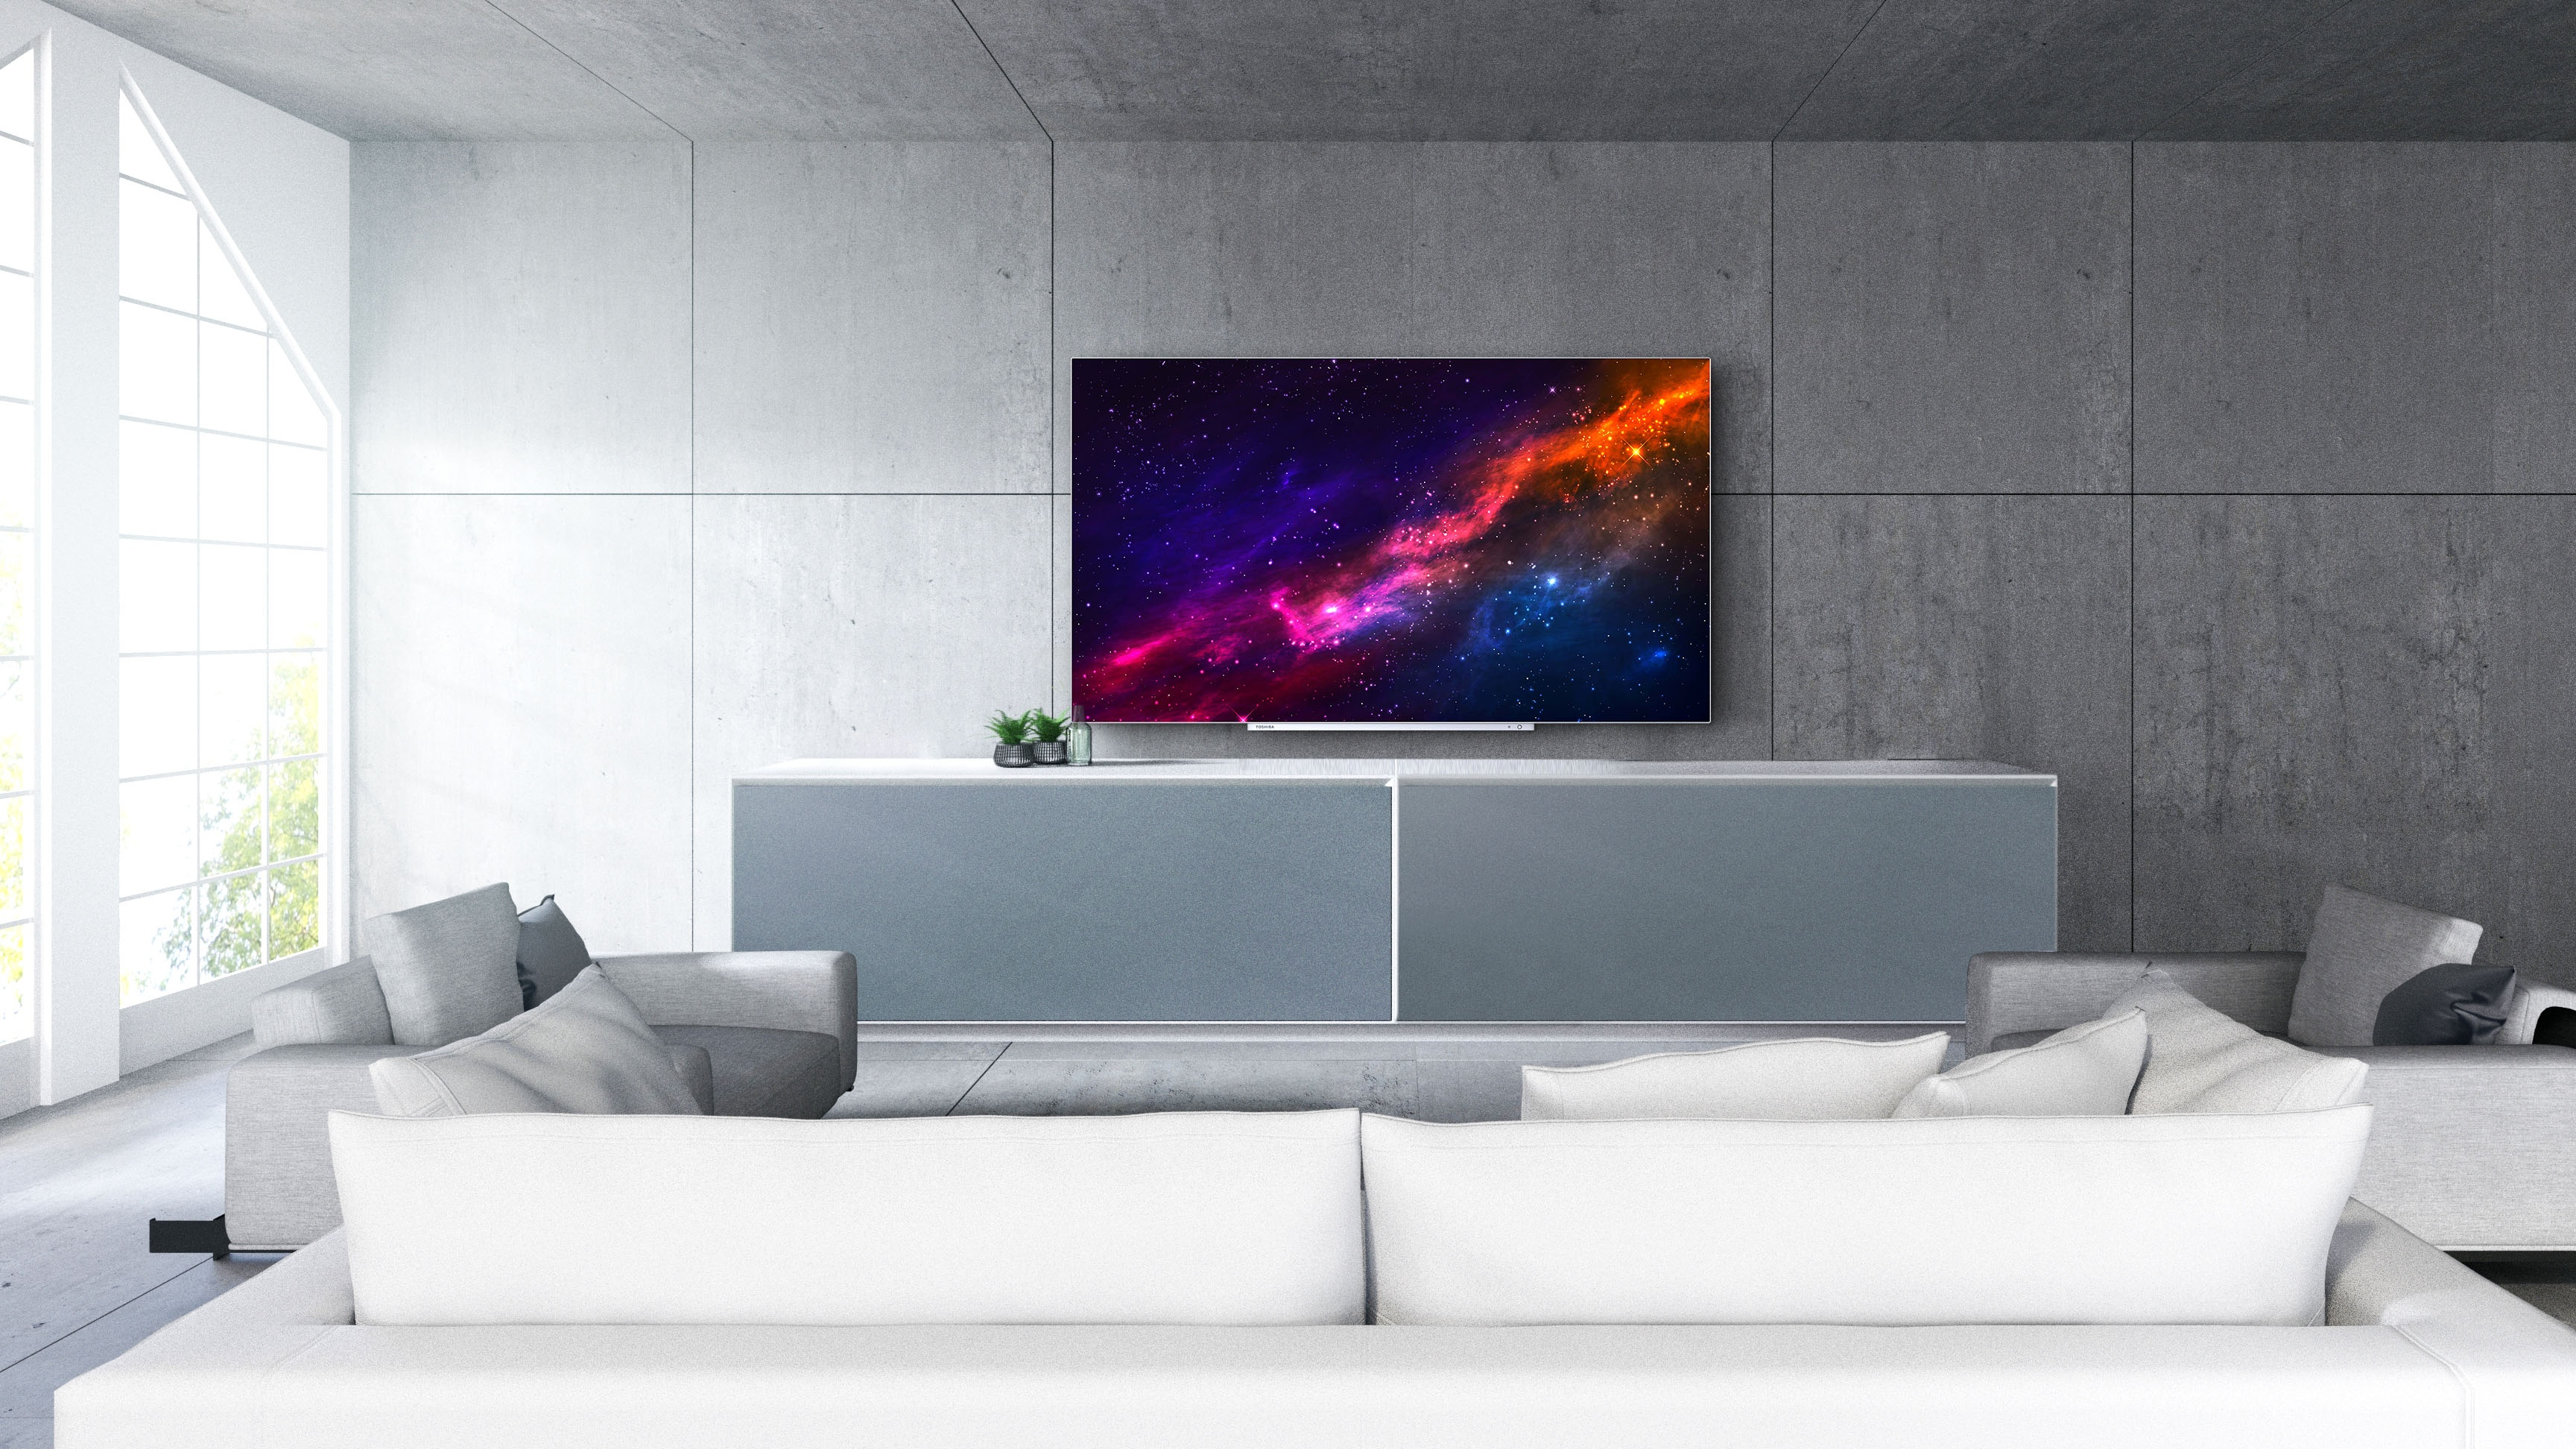 Toshiba TV Catalog 2018: here's every Toshiba TV model coming in